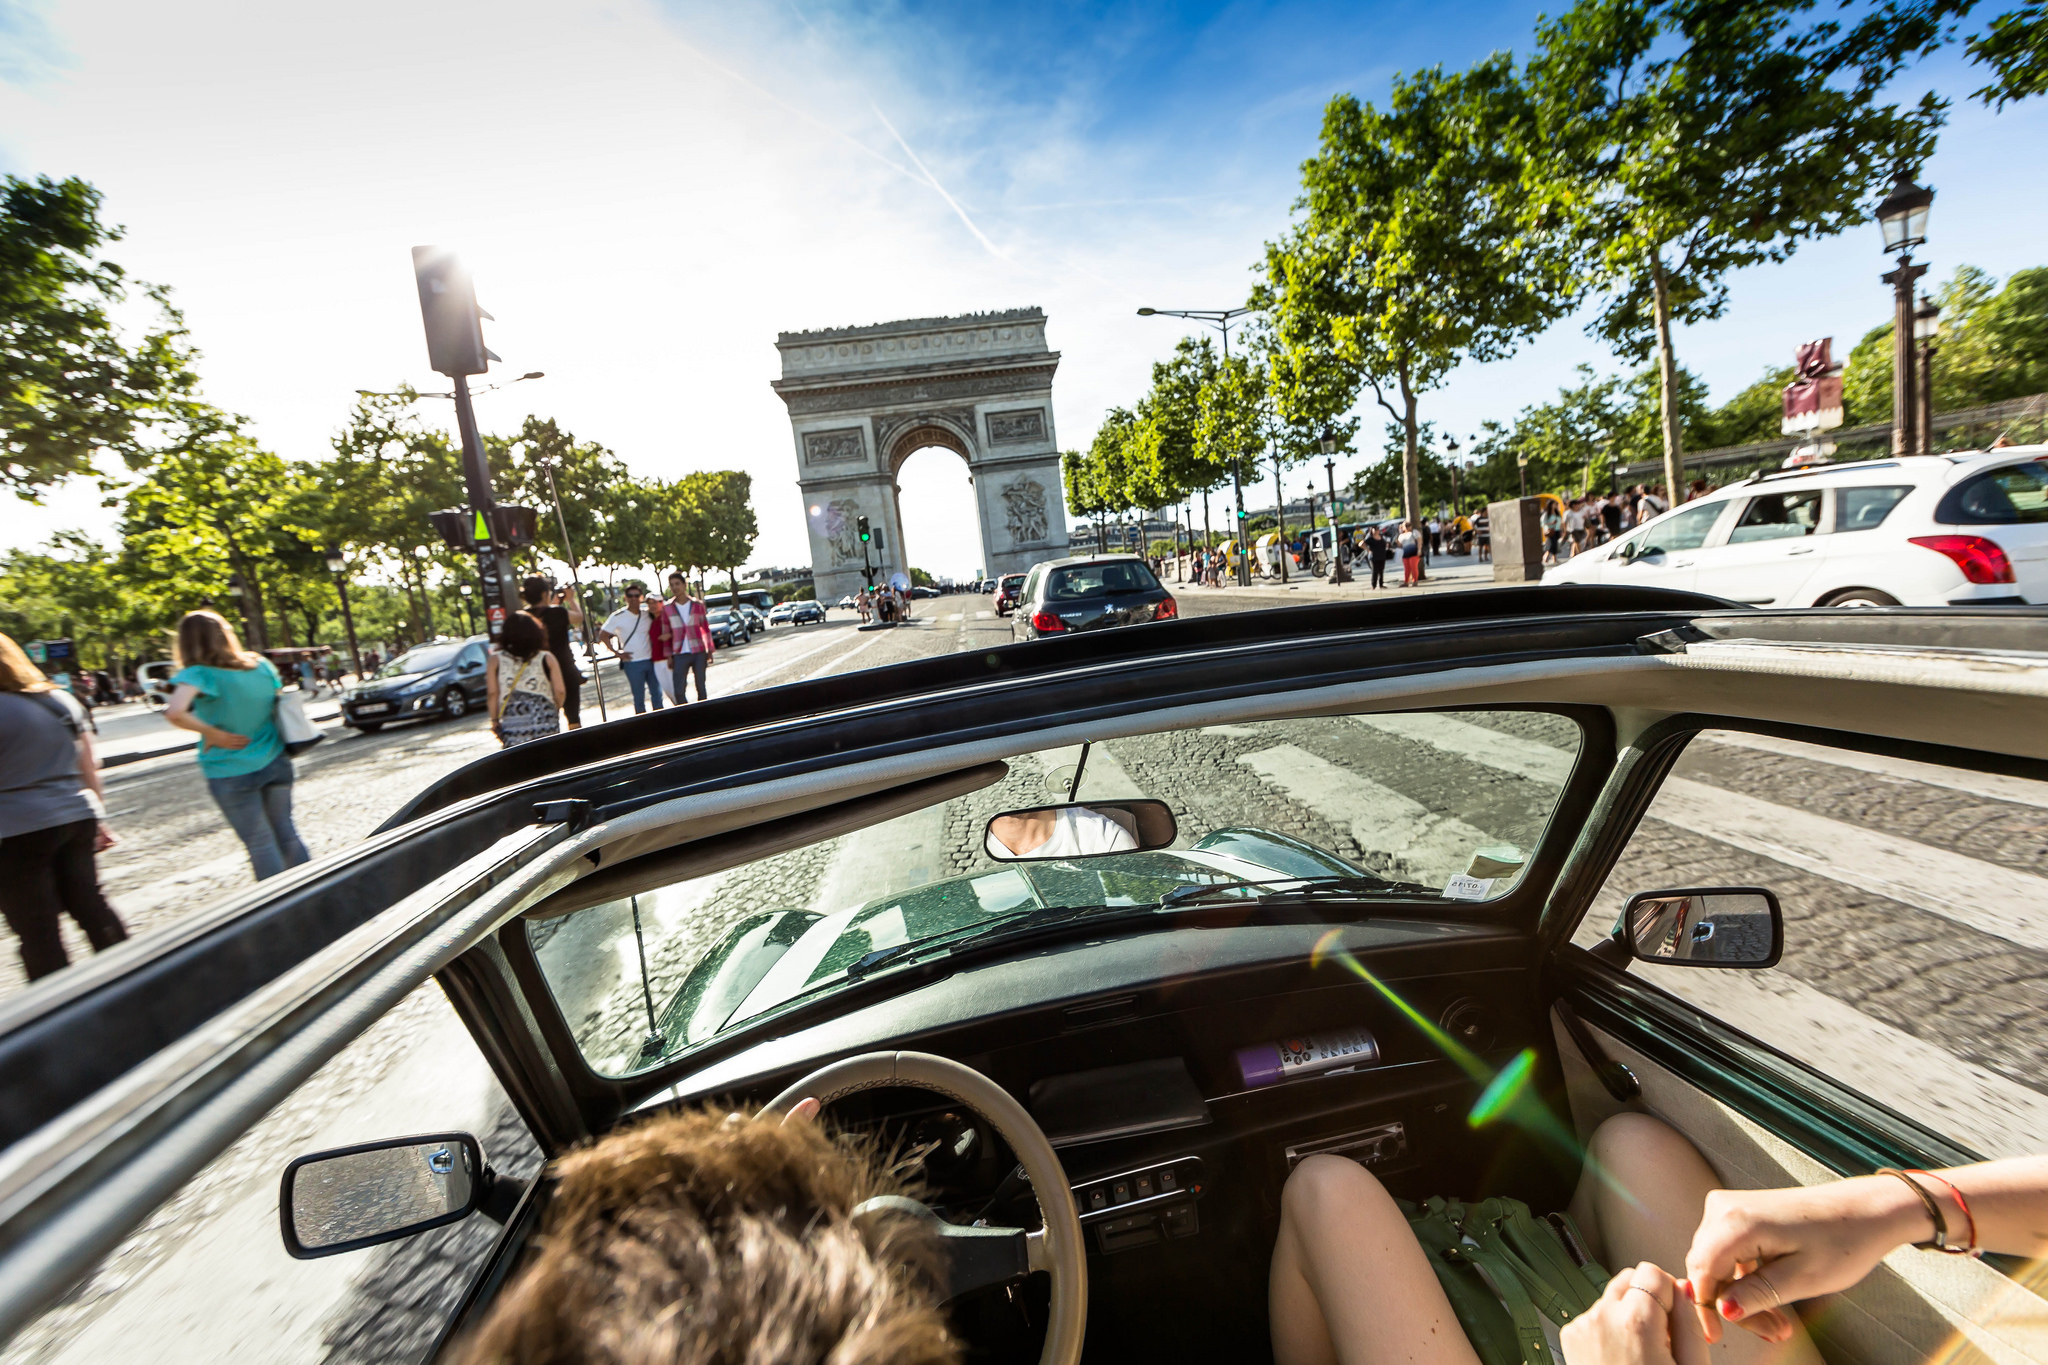 50 things to do in Paris this summer